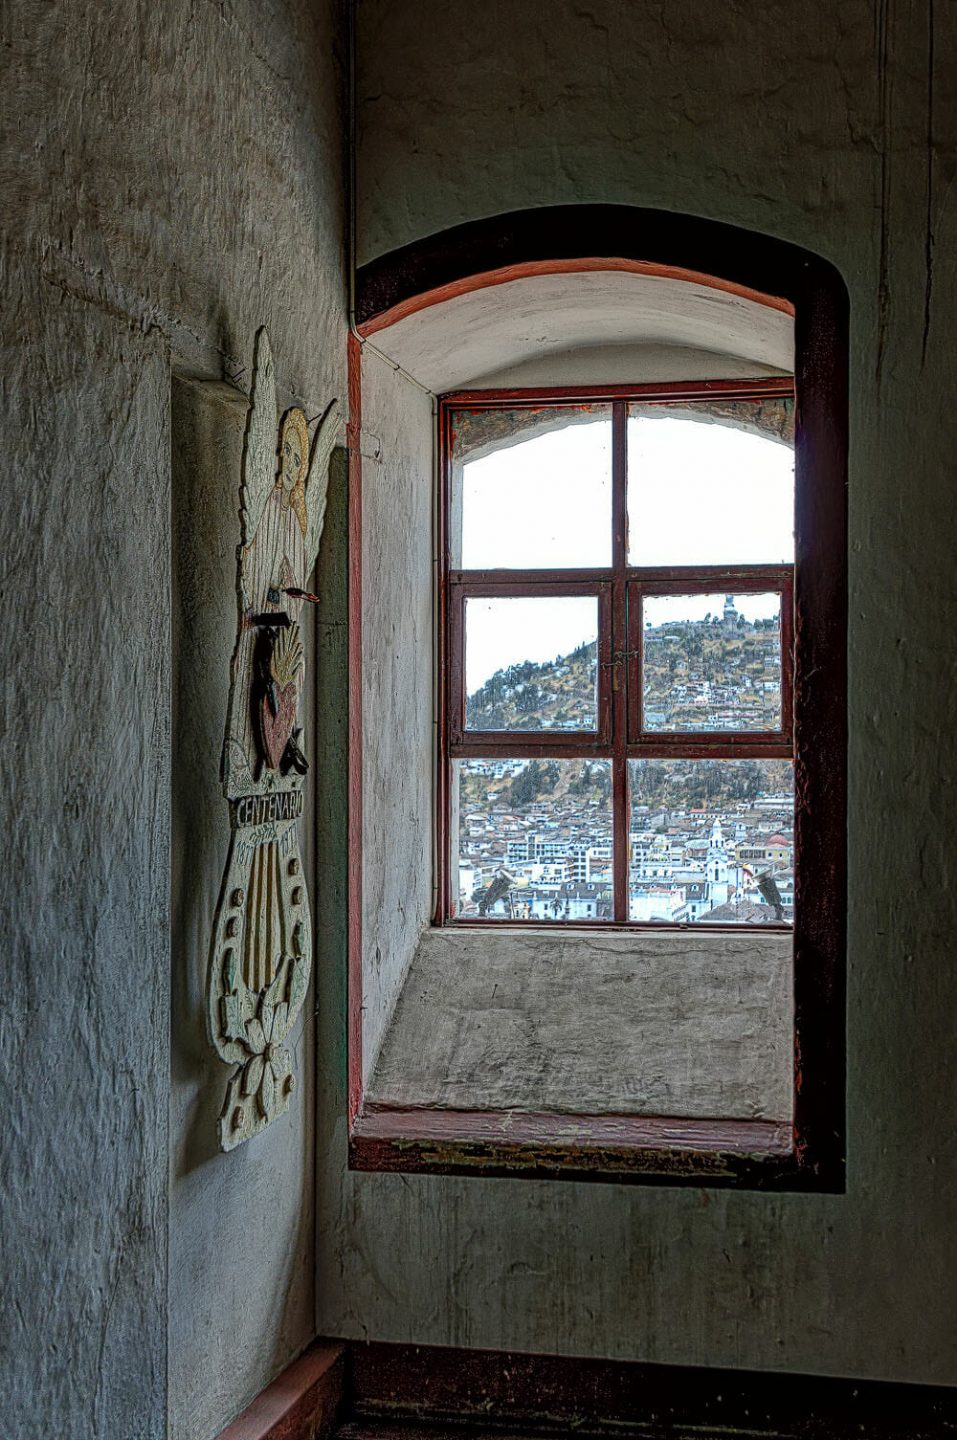 Window of the monastery of the agustian nuns with view